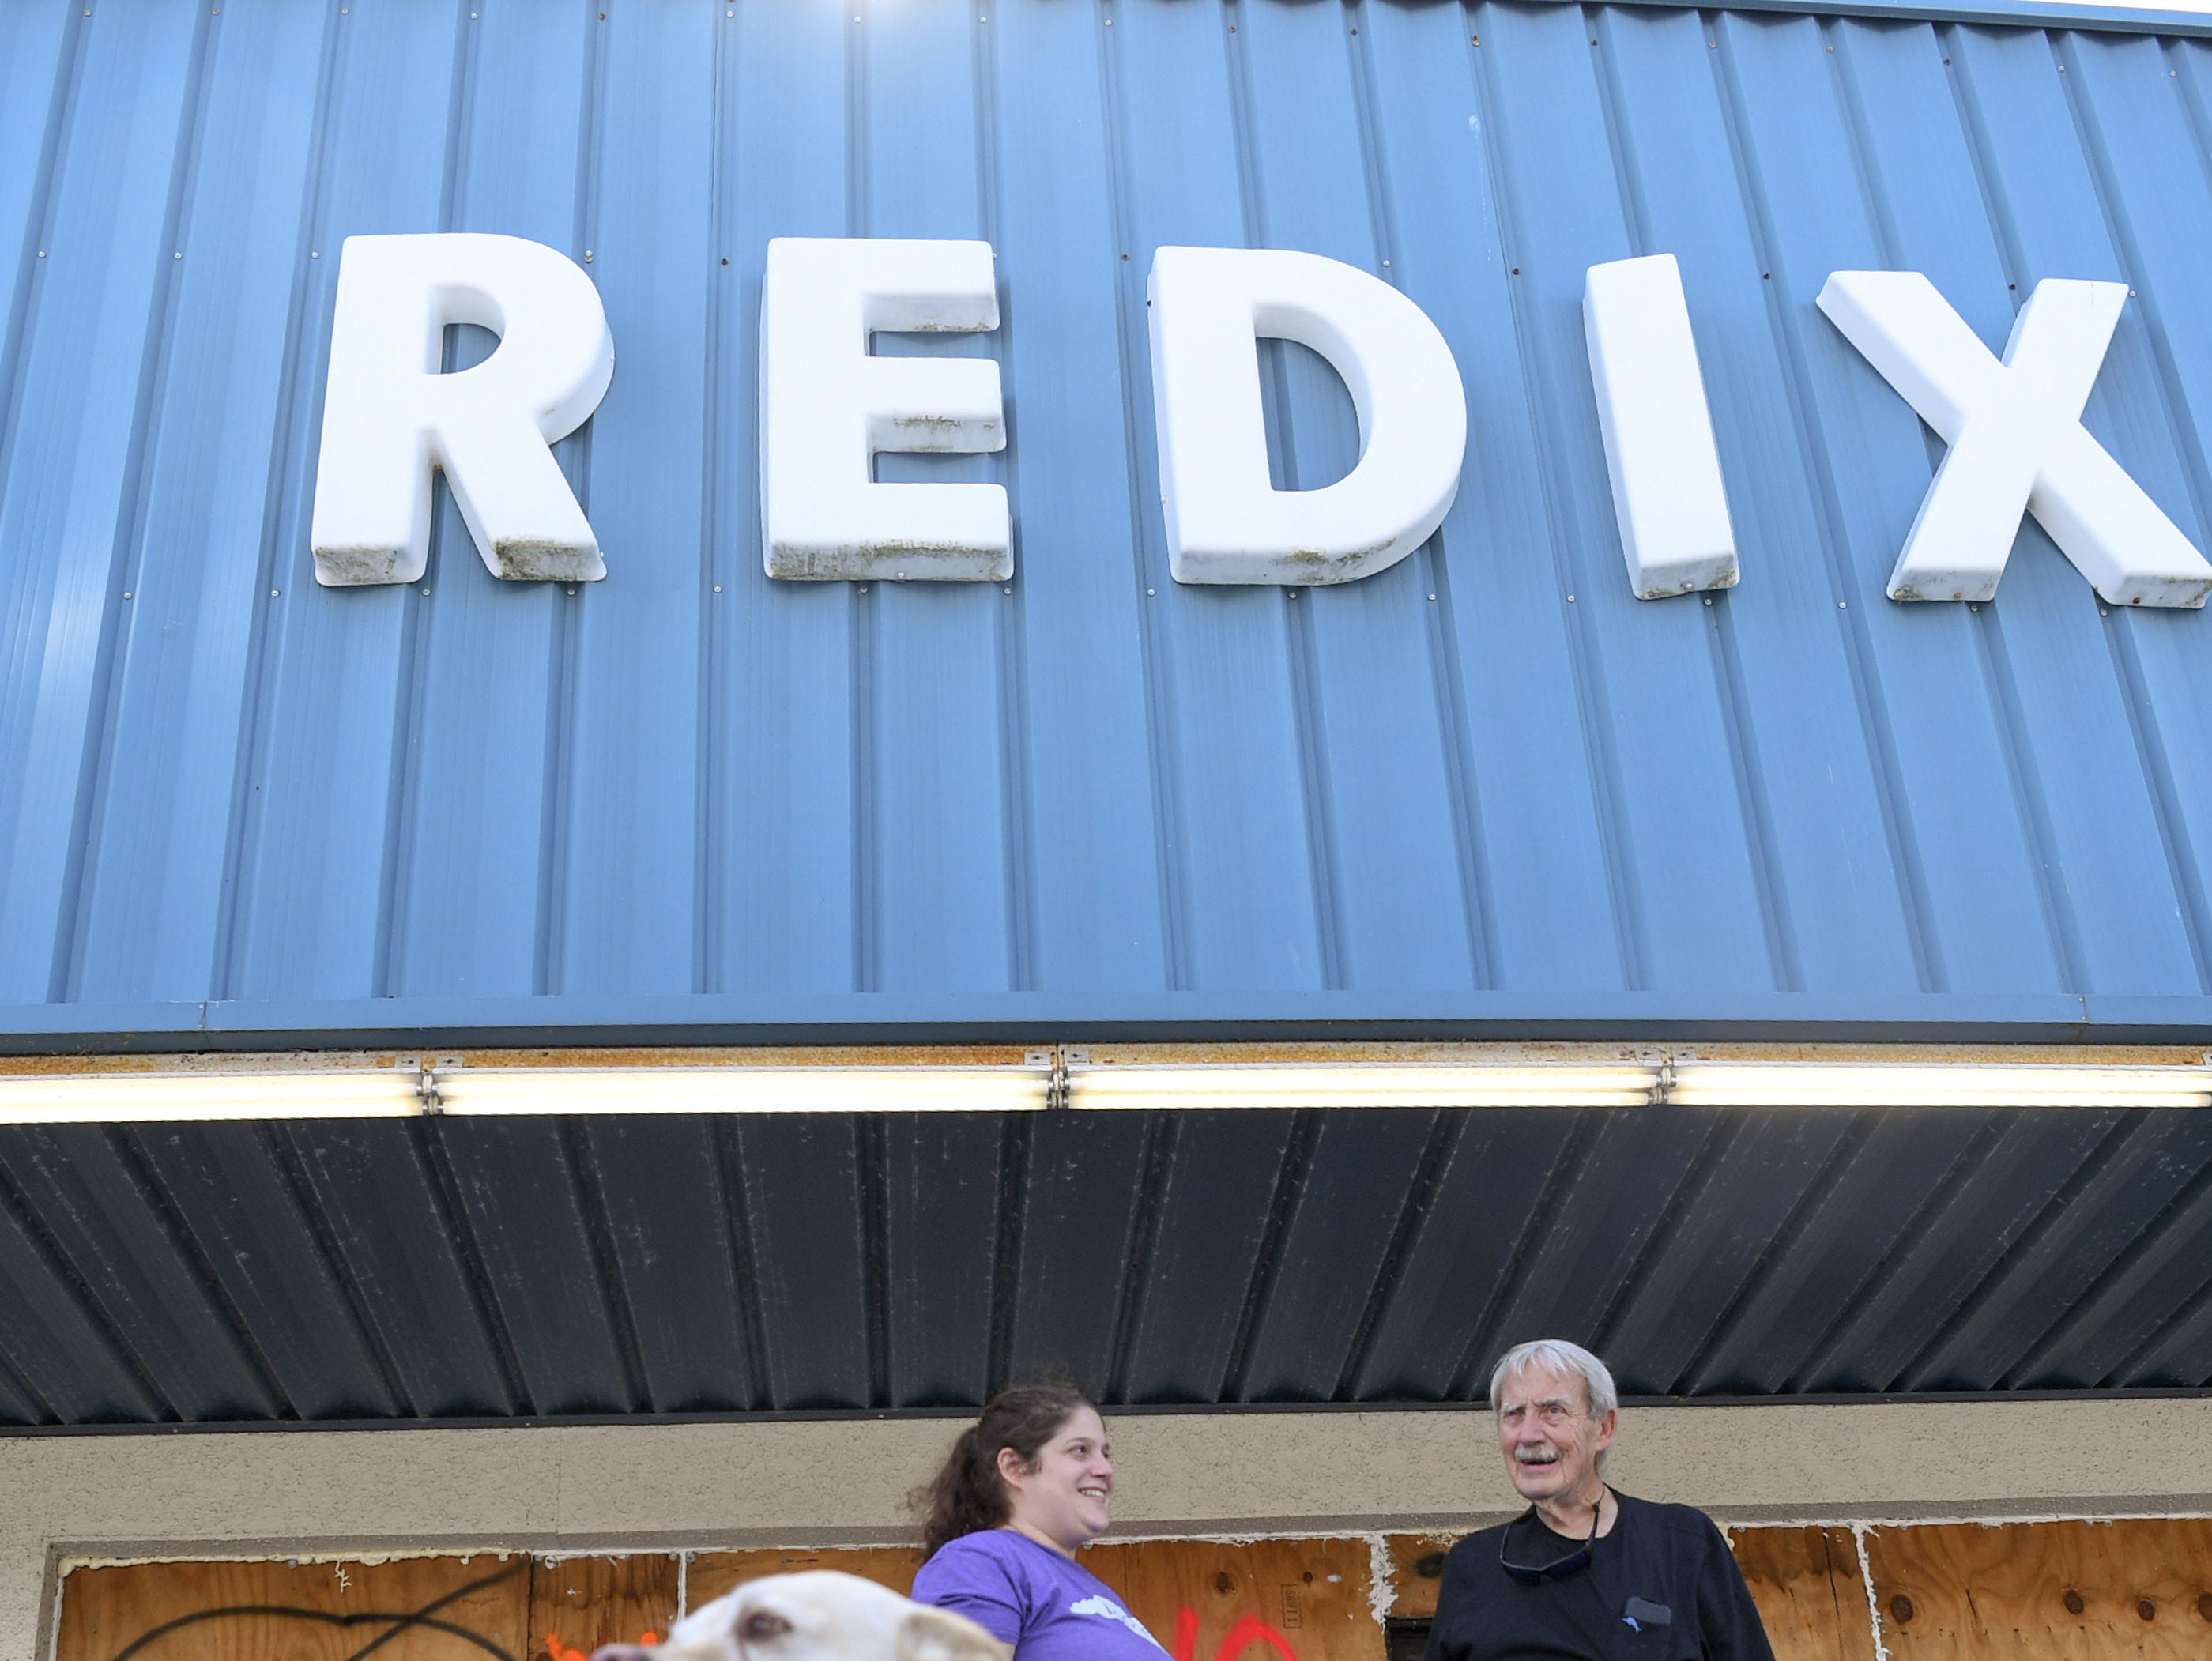 Waylon the dog, left, Meredith Reddick, middle, and her father Gordon Reddick, owner of Redix store, stand near their store with plywood boards covering windows on Tuesday, September 11, 2018. The Reddick's have used the same boards since 1993, and wrote names for each storm since then. Hurricane Florence is expected to arrive in Wilmington, North Carolina late Thursday night through Friday morning. (Ken Ruinard / Greenville News / Gannett USA Today Network / 2018 )